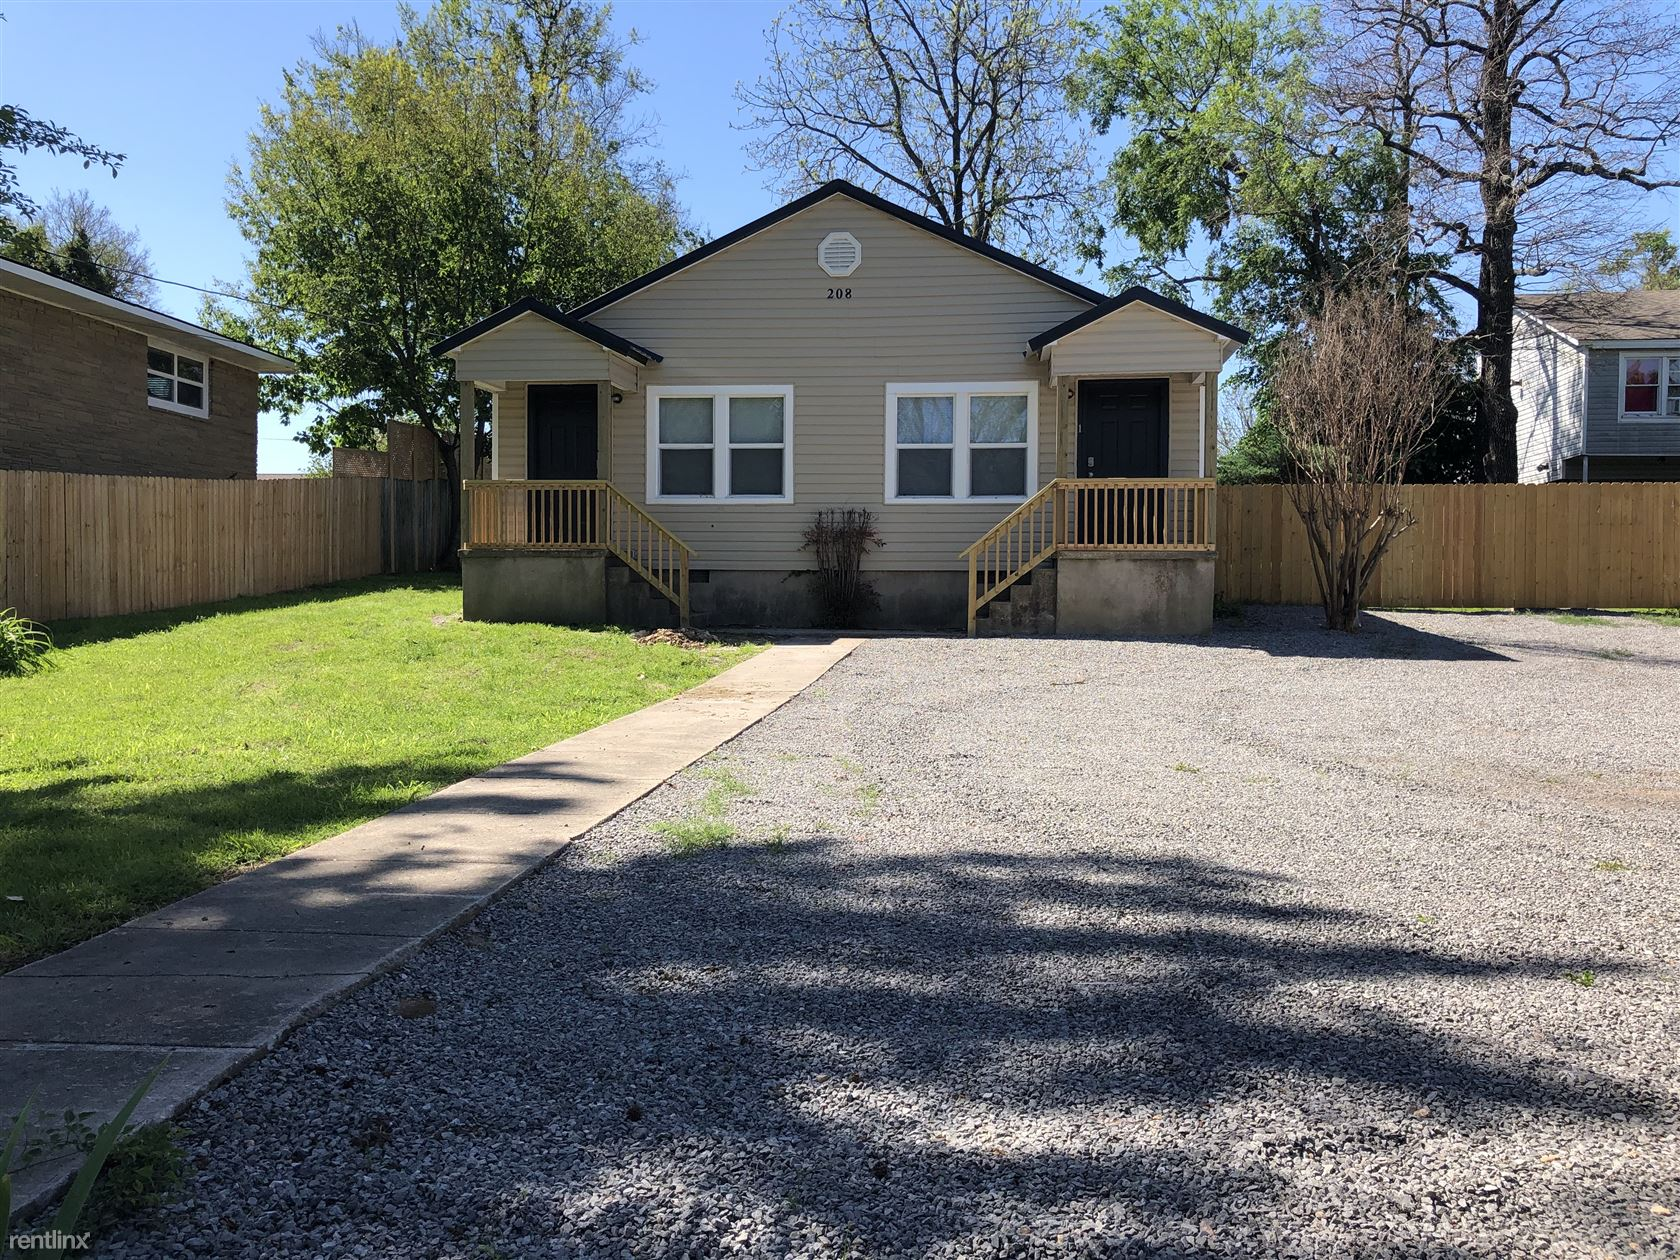 208 Goingsnake St, Tahlequah, OK - $800 USD/ month